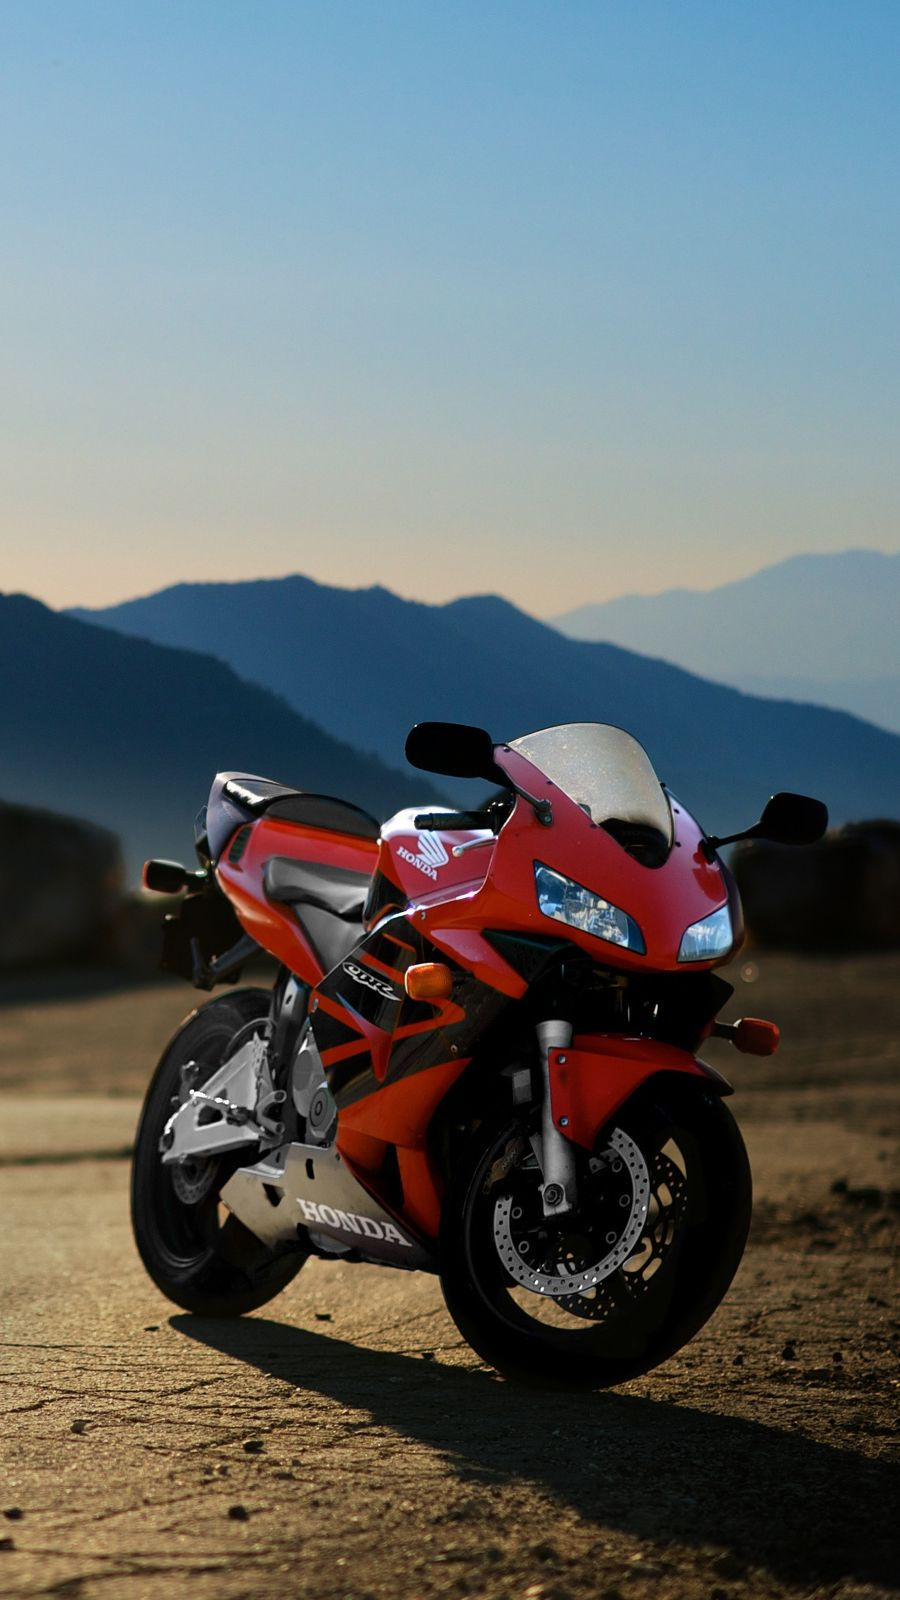 Honda CBR600rr Red Motorcycle IPhone Wallpaper